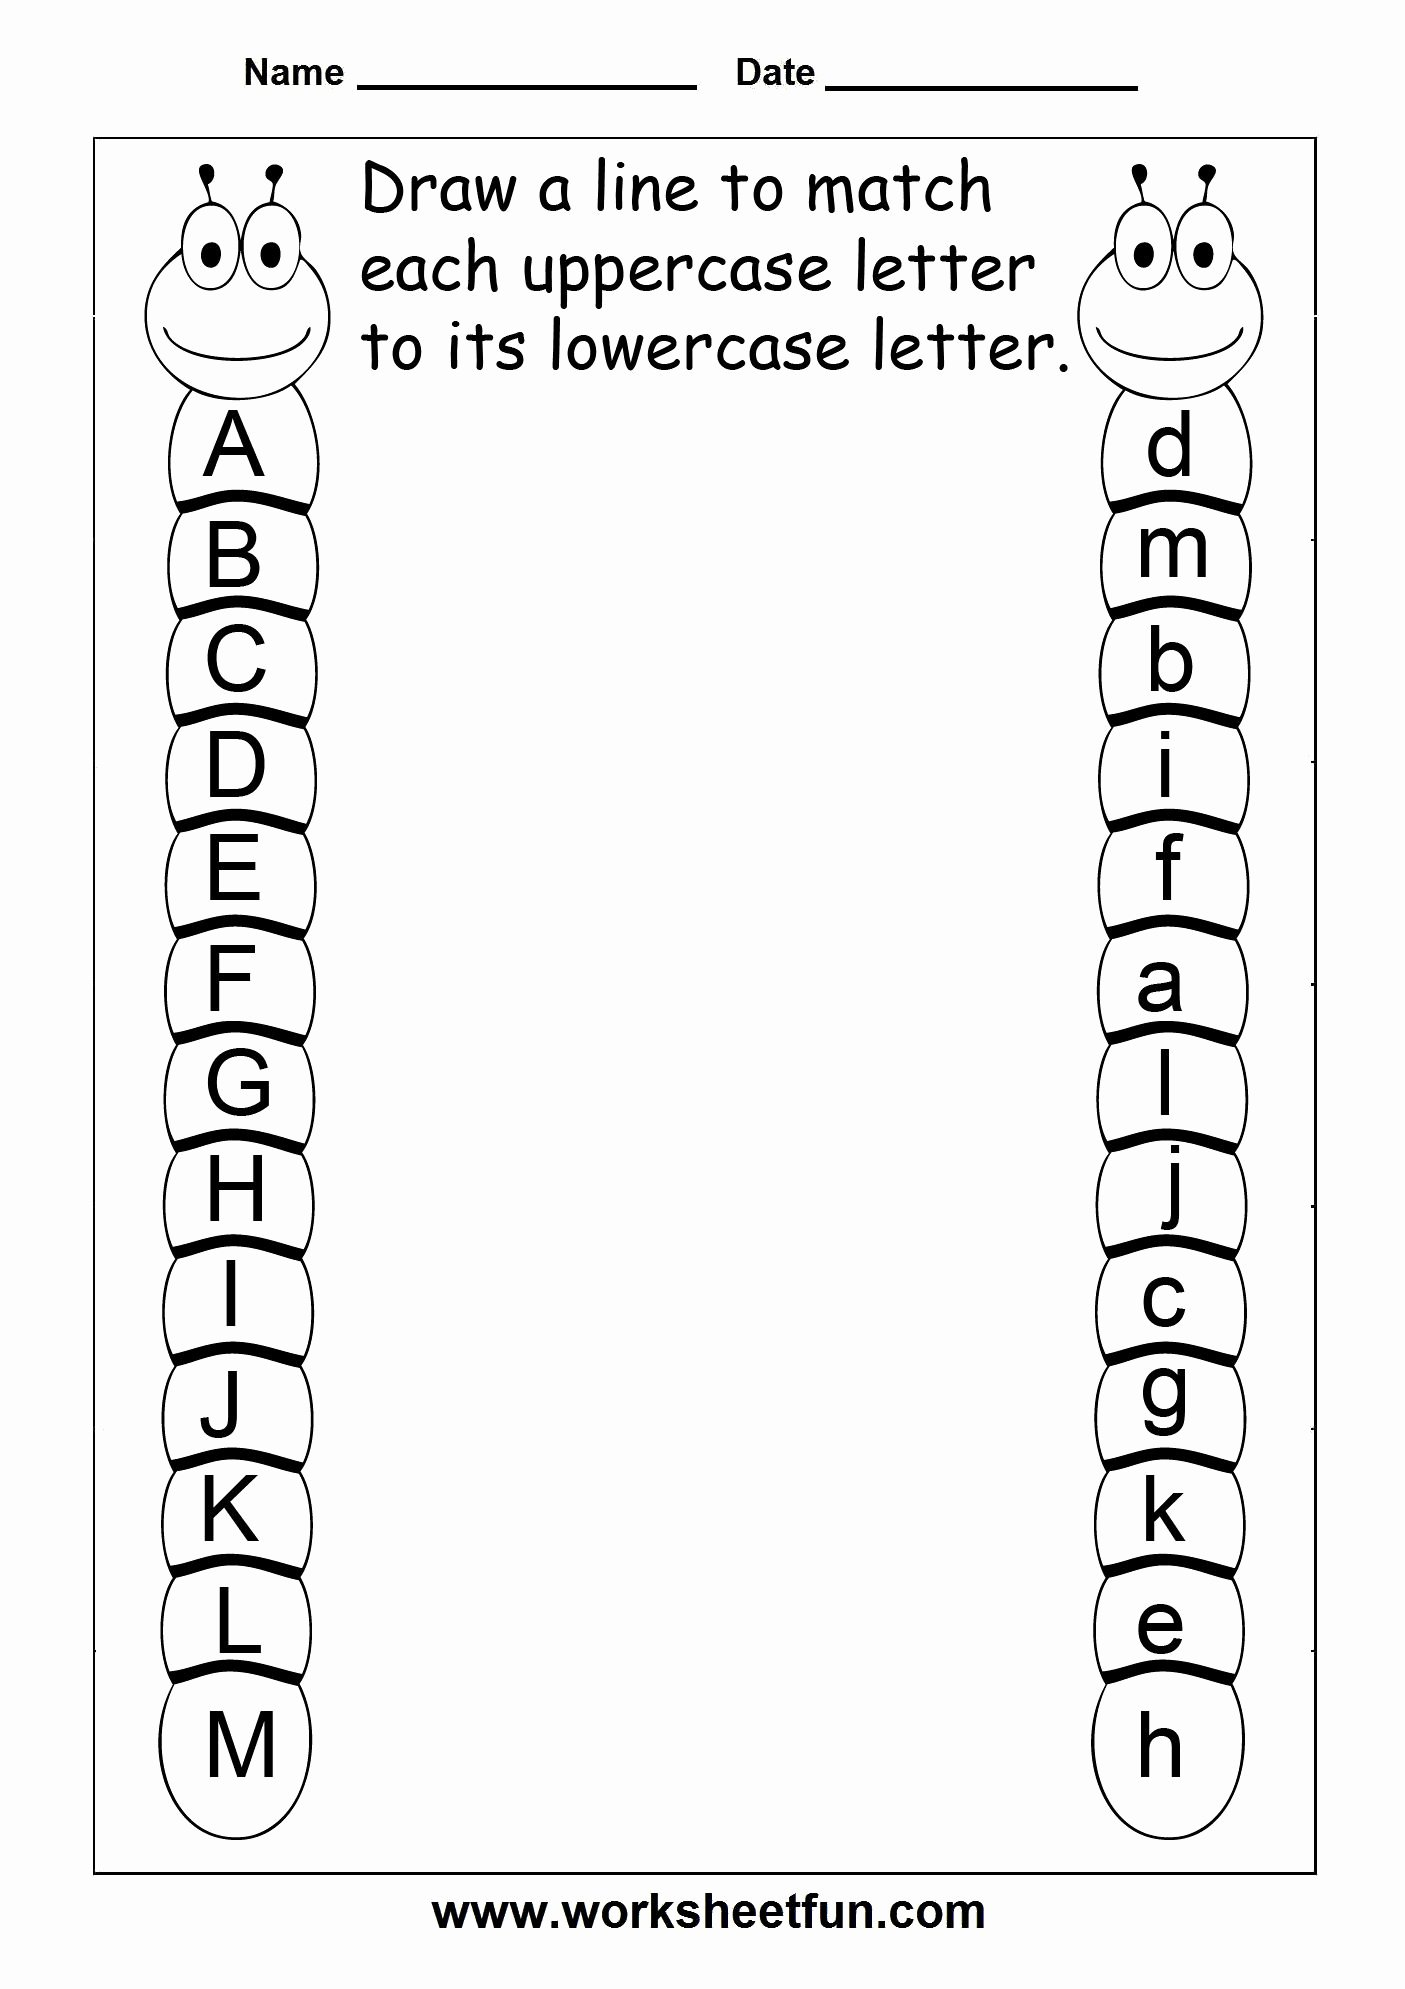 Worksheets for Preschoolers Pinterest Fresh Letter A Printable Beautiful Letter Worksheets Pinterest